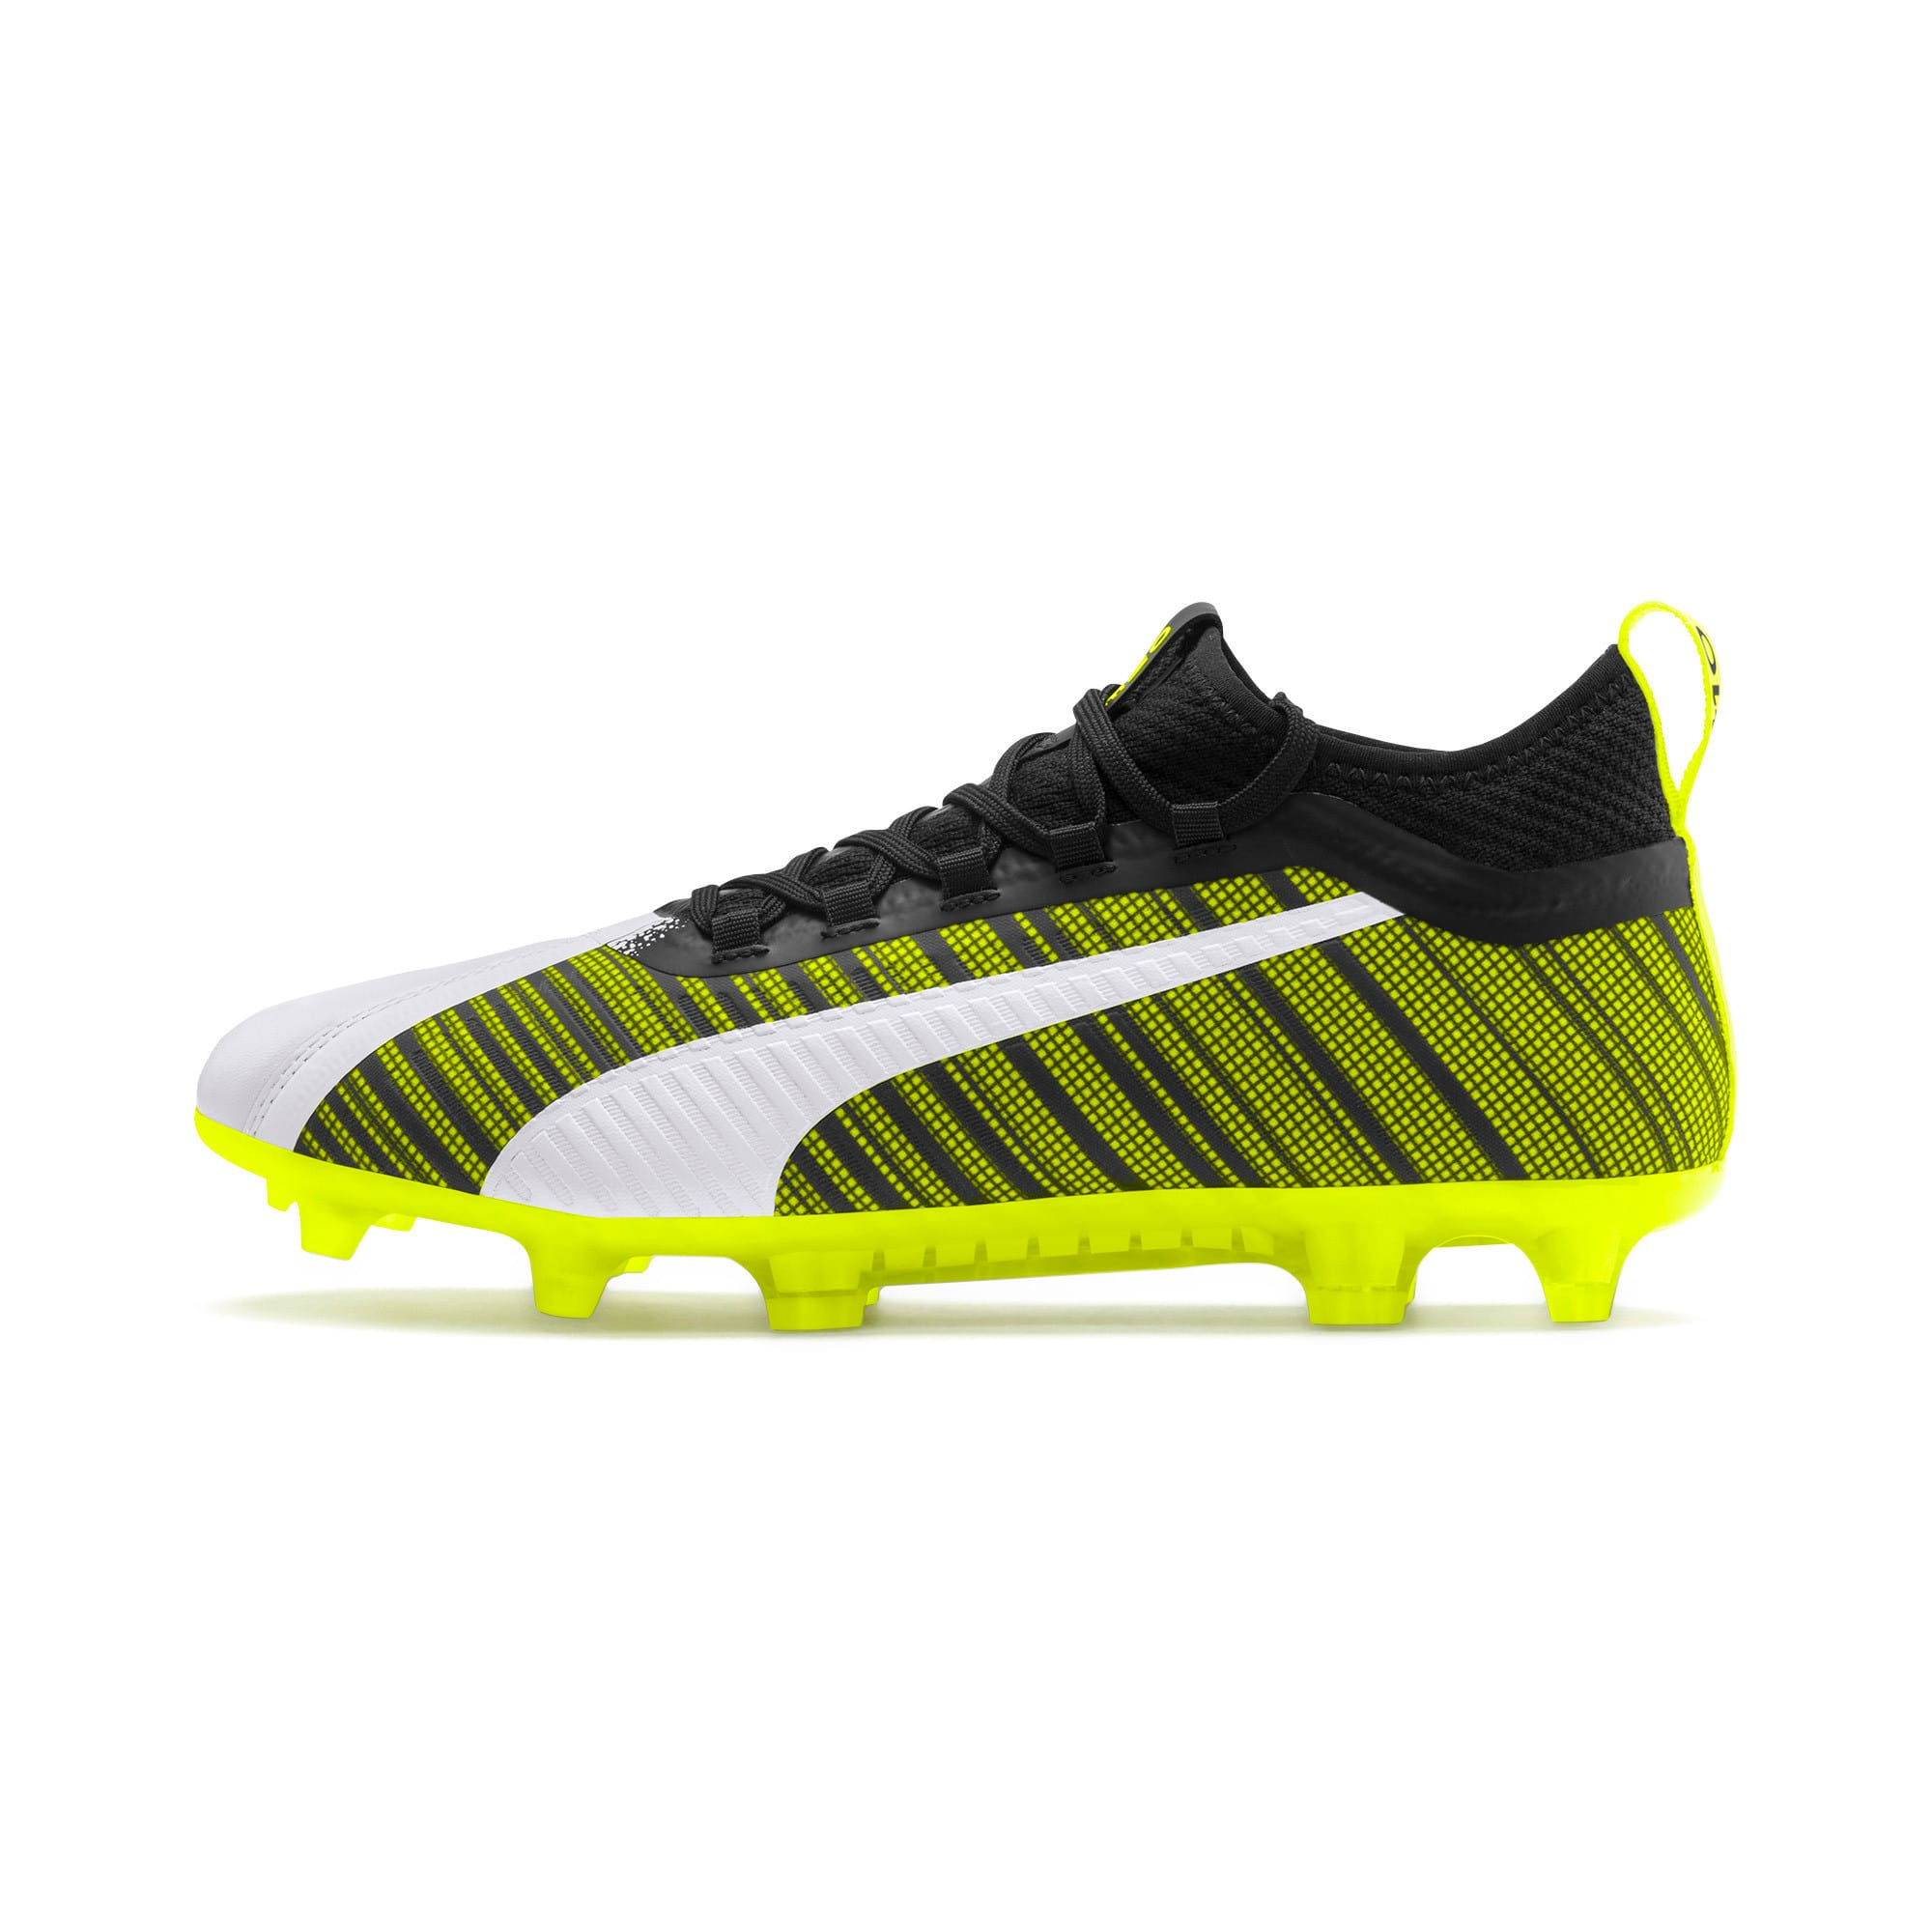 Thumbnail 1 of PUMA ONE 5.2 Men's Football Boots, White-Black-Yellow Alert, medium